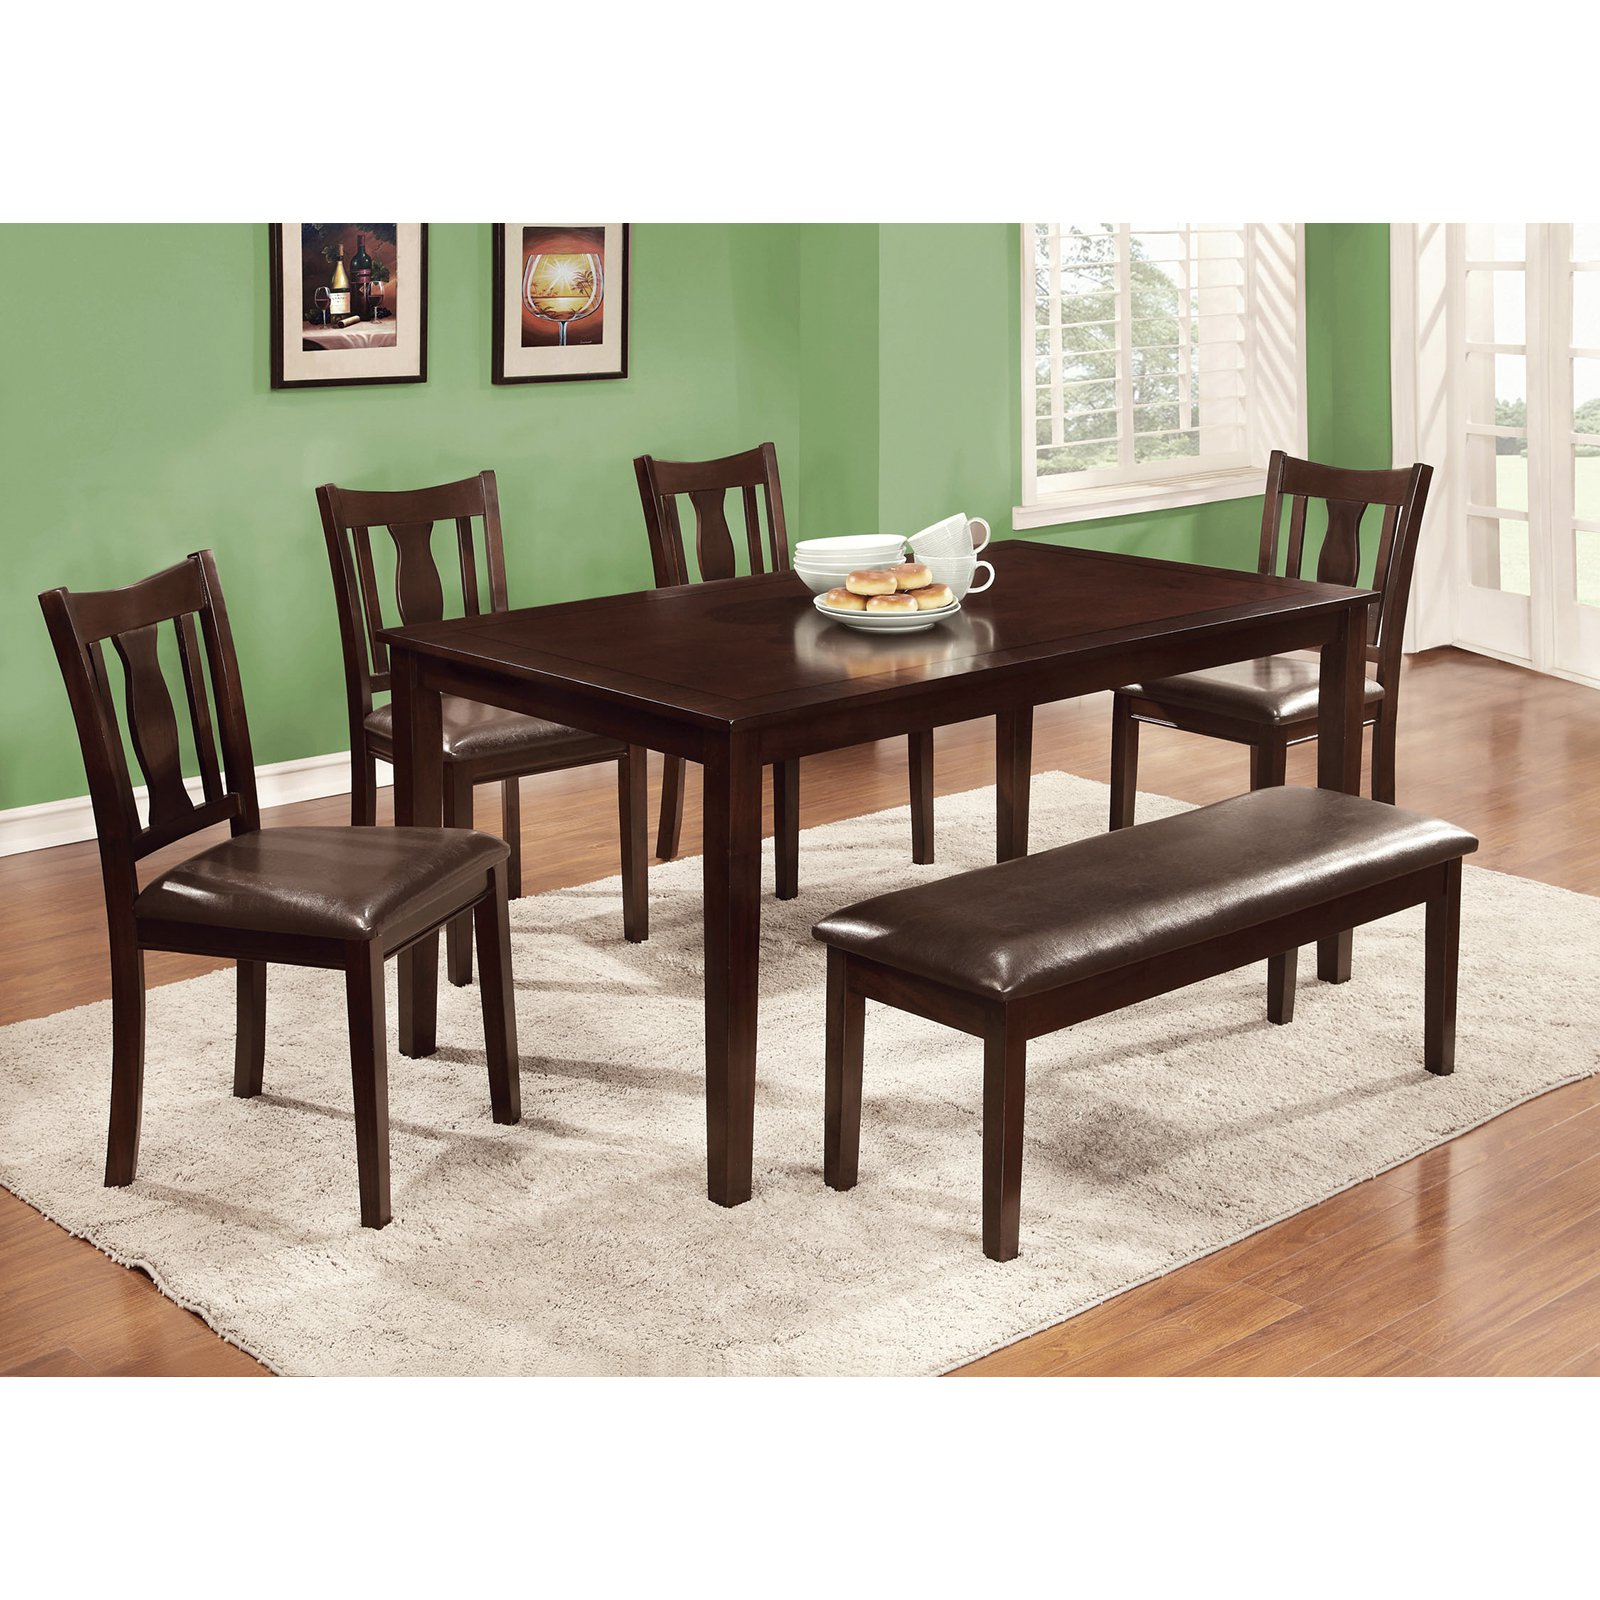 Furniture of America Chargon 6-Piece Dining Table Set with Bench - Espresso